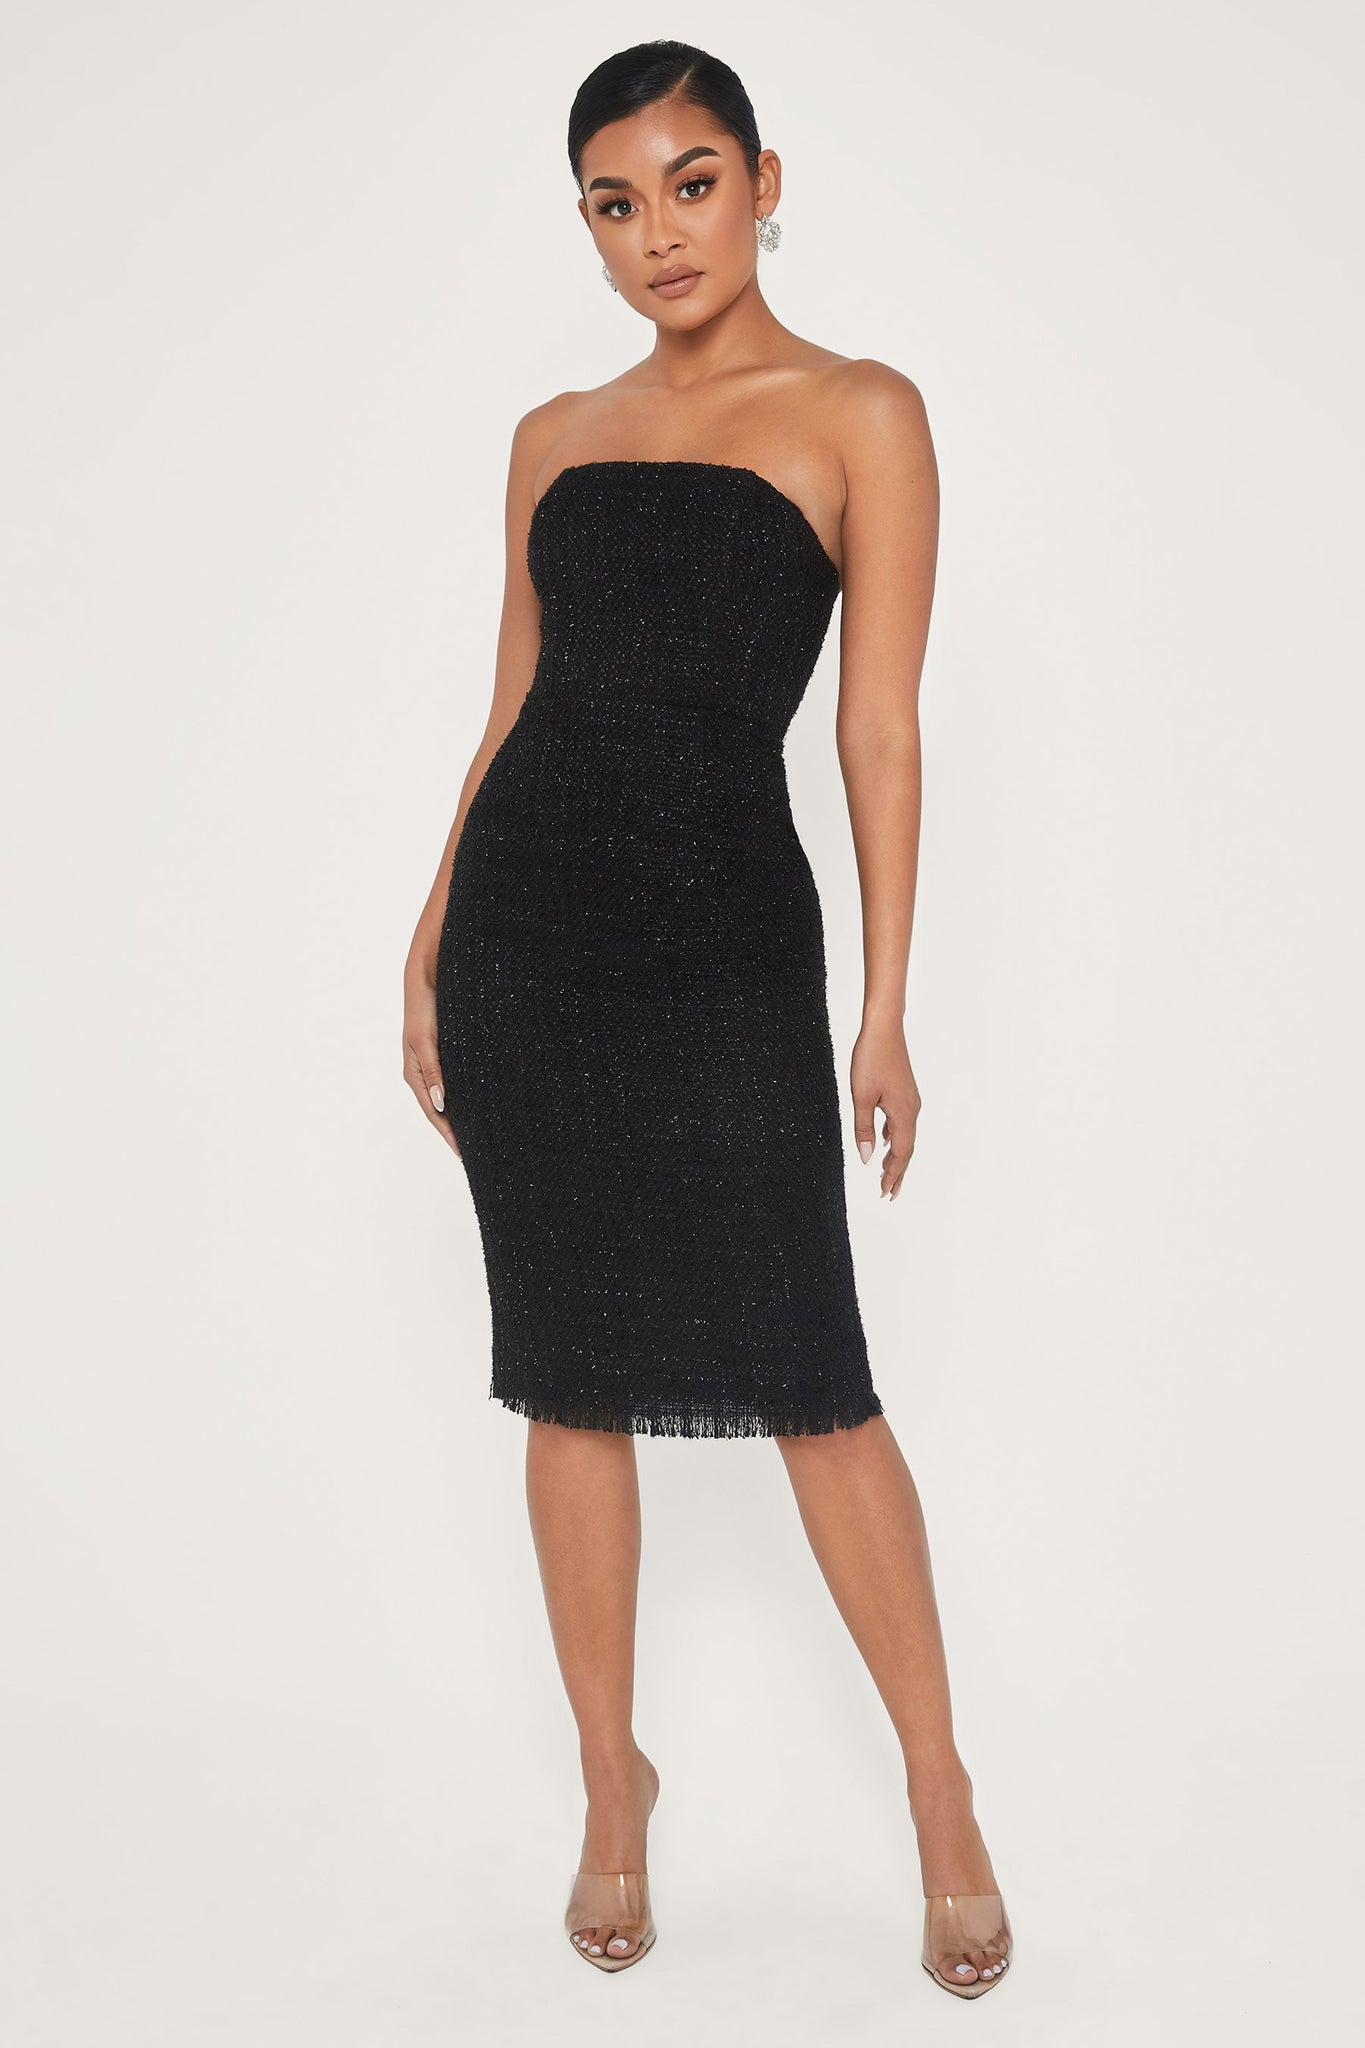 Coco Strapless Tweed Midi Dress - Black - MESHKI